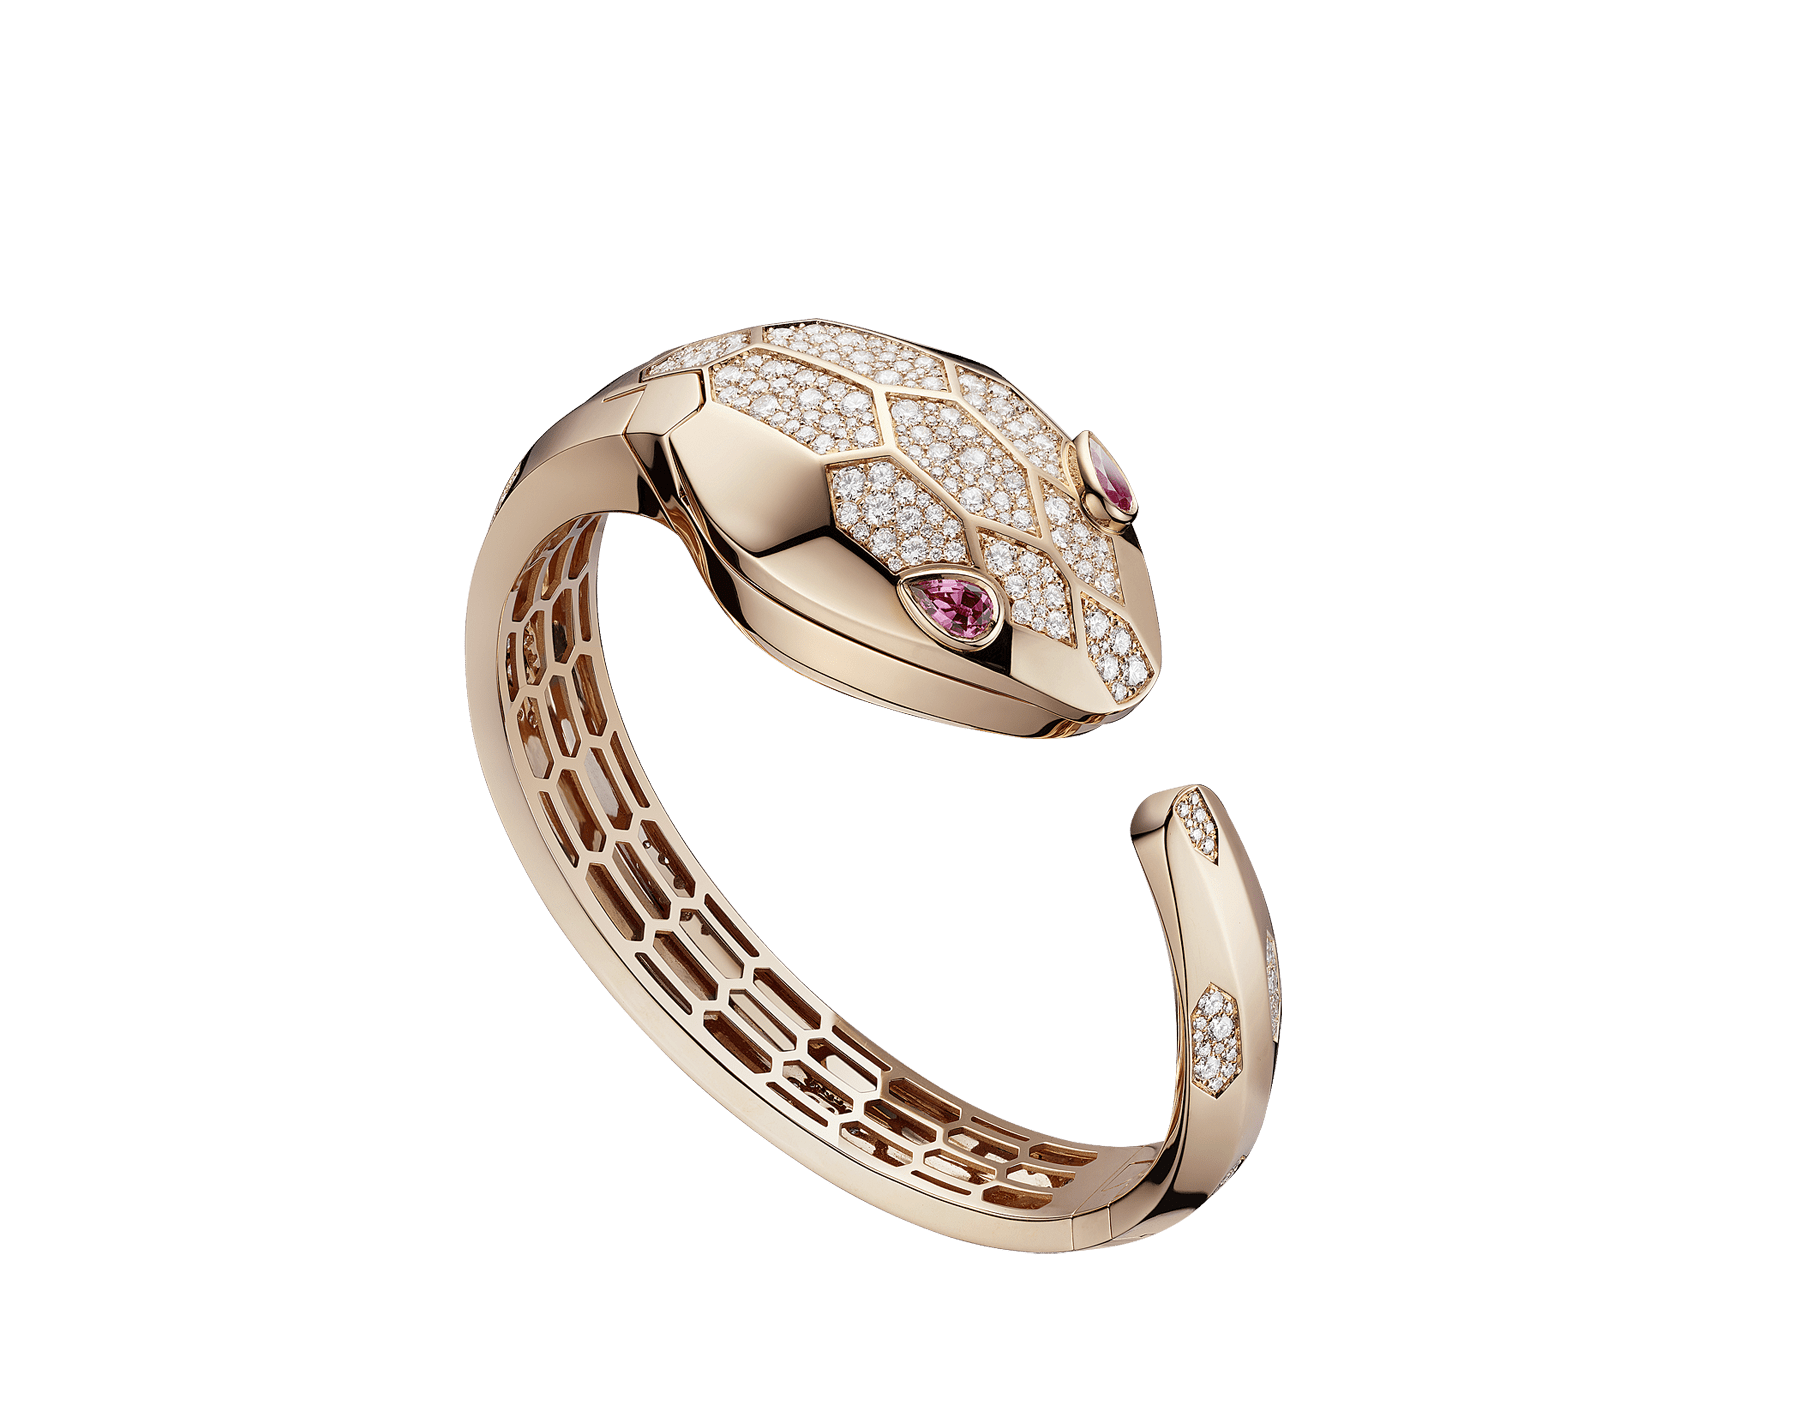 Serpenti Misteriosi Secret Watch in 18 kt rose gold case and bangle bracelet both set with round brilliant-cut diamonds, 18 kt rose gold diamond pavé dial and pear-shaped rubellite eyes. 102754 image 1